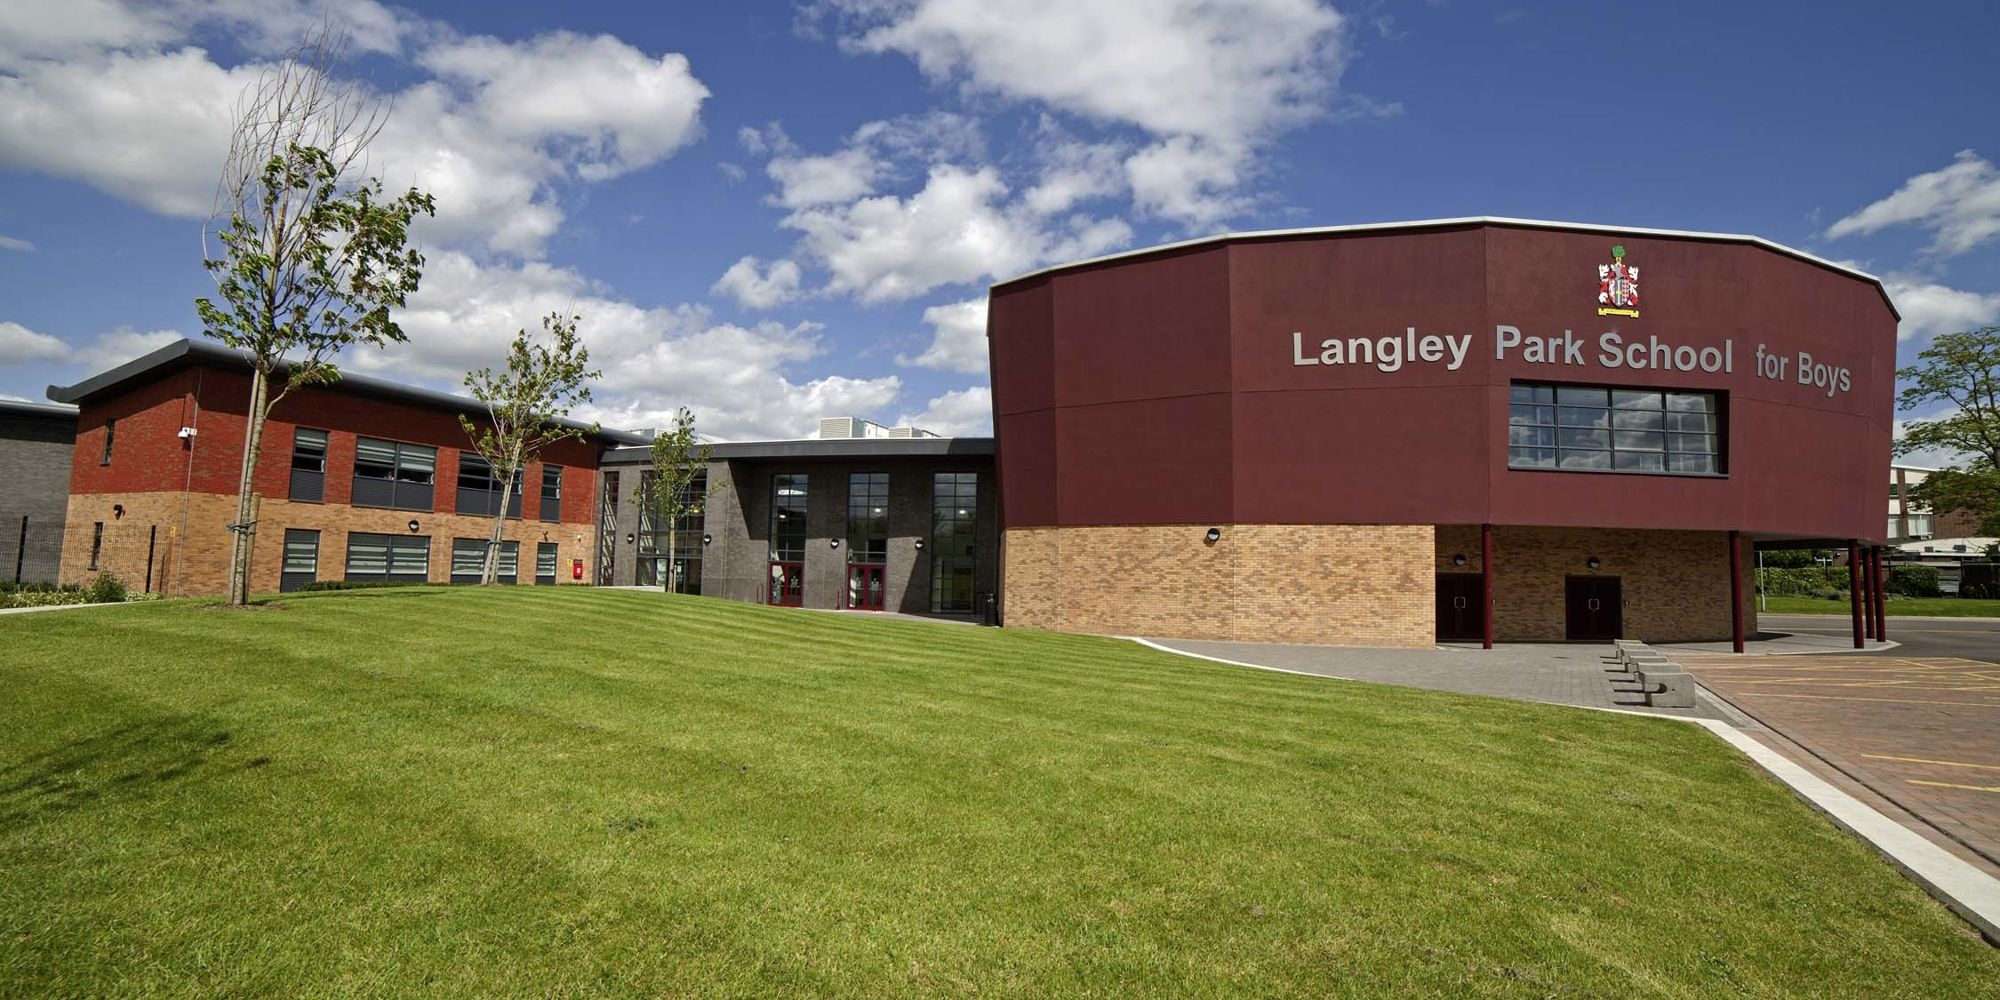 Langley Park School for Boys Image 5